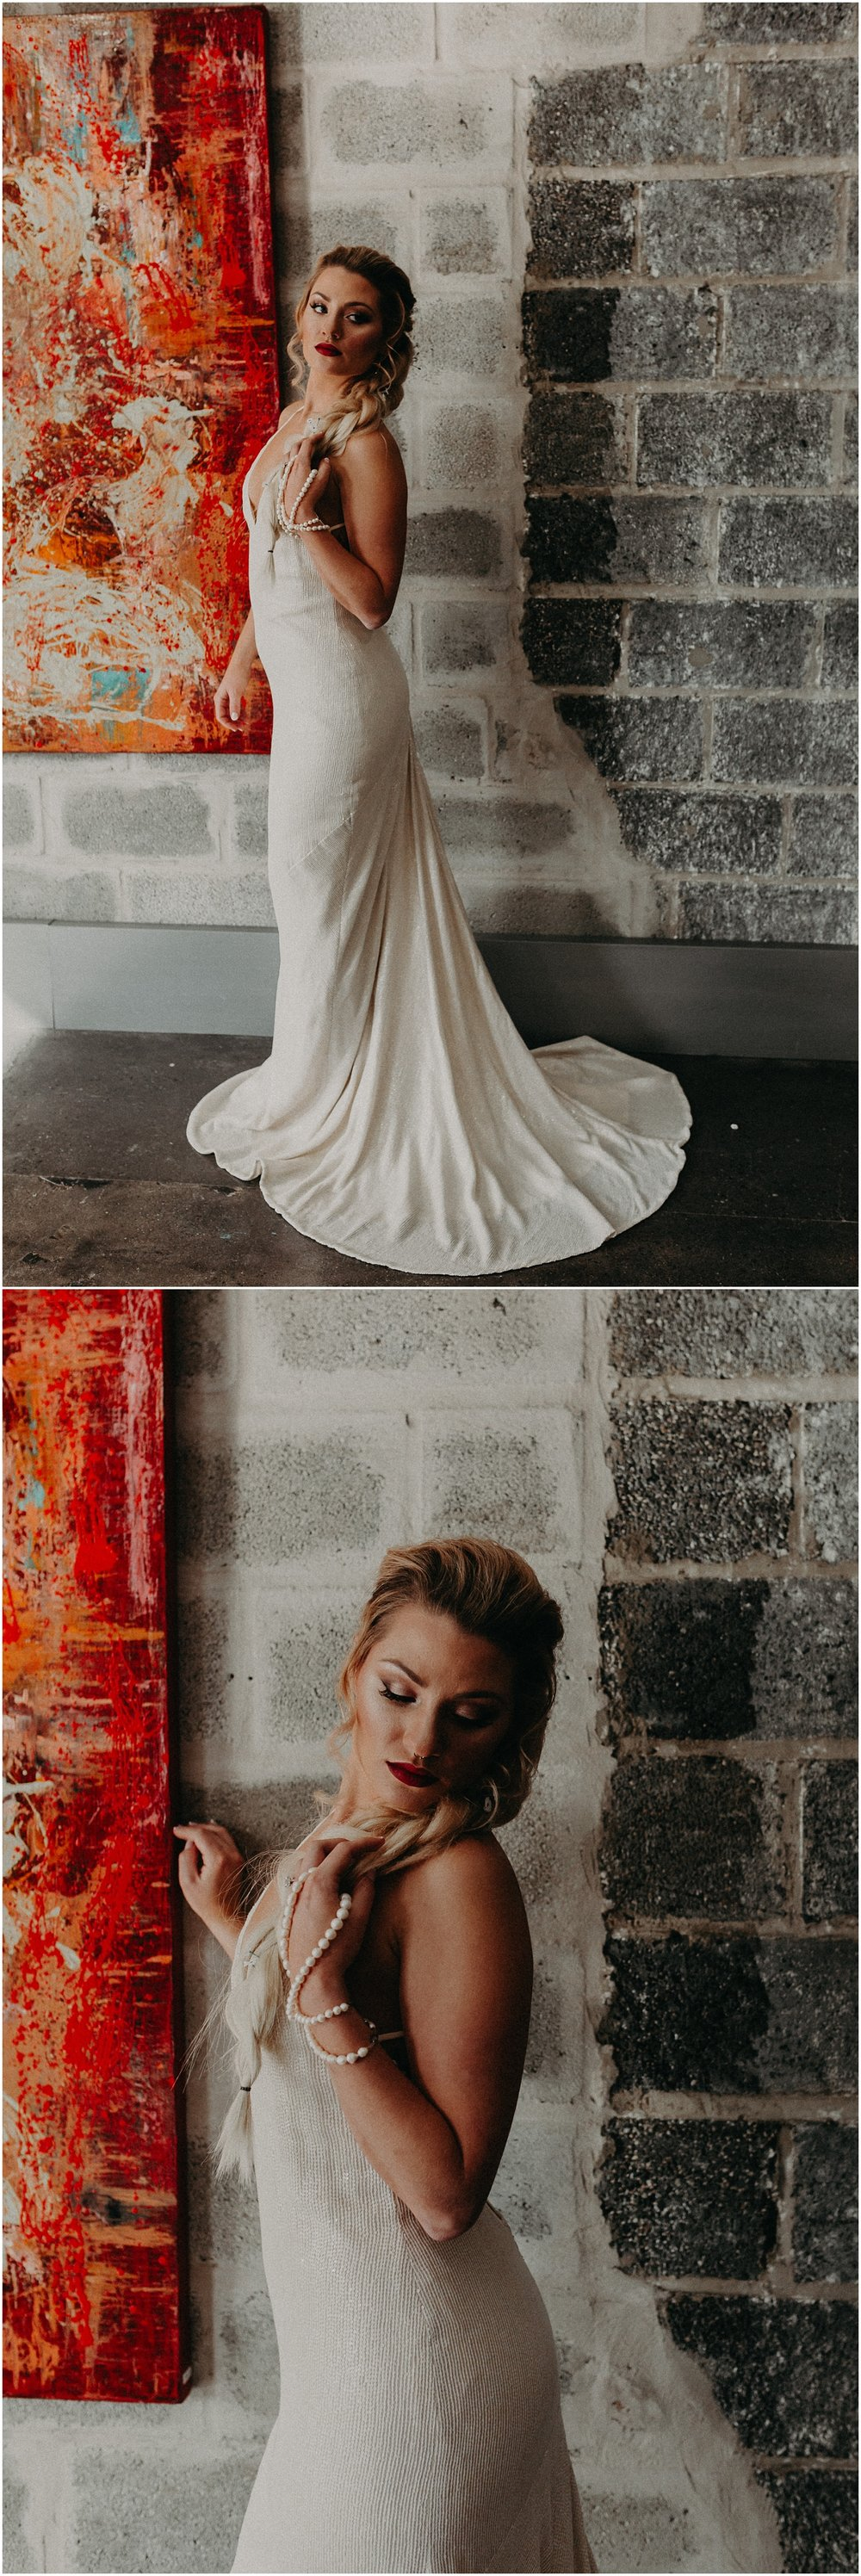 styled shoot-bridal portraits-portraits-bride-rock and roll-industrial-urban-wedding-inspiration-nj-new jersey-nyc-new york city-art-diy wedding_0053.jpg